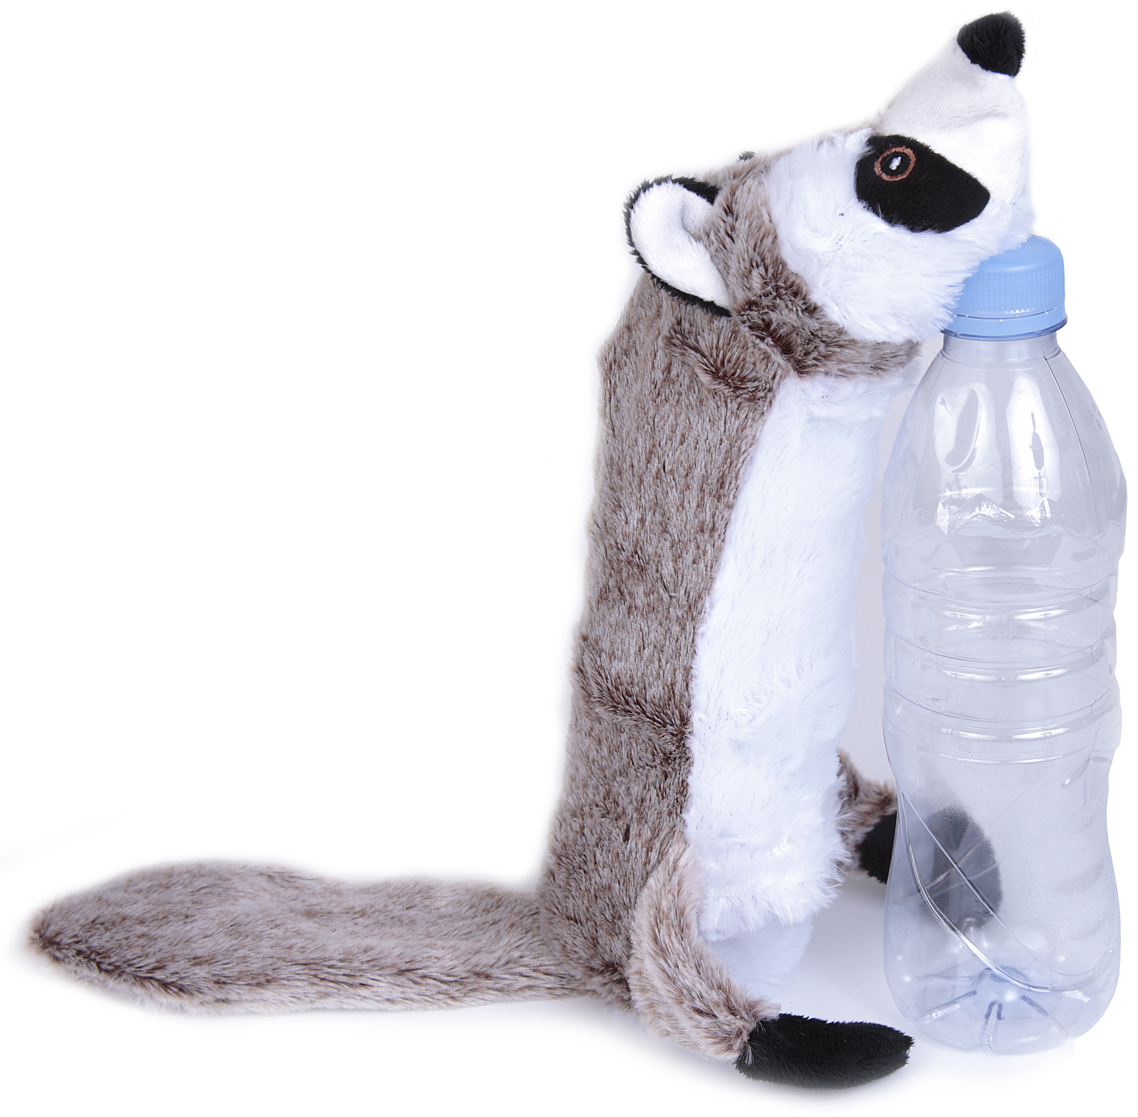 Squeaky Bottle Dog Toy Uk